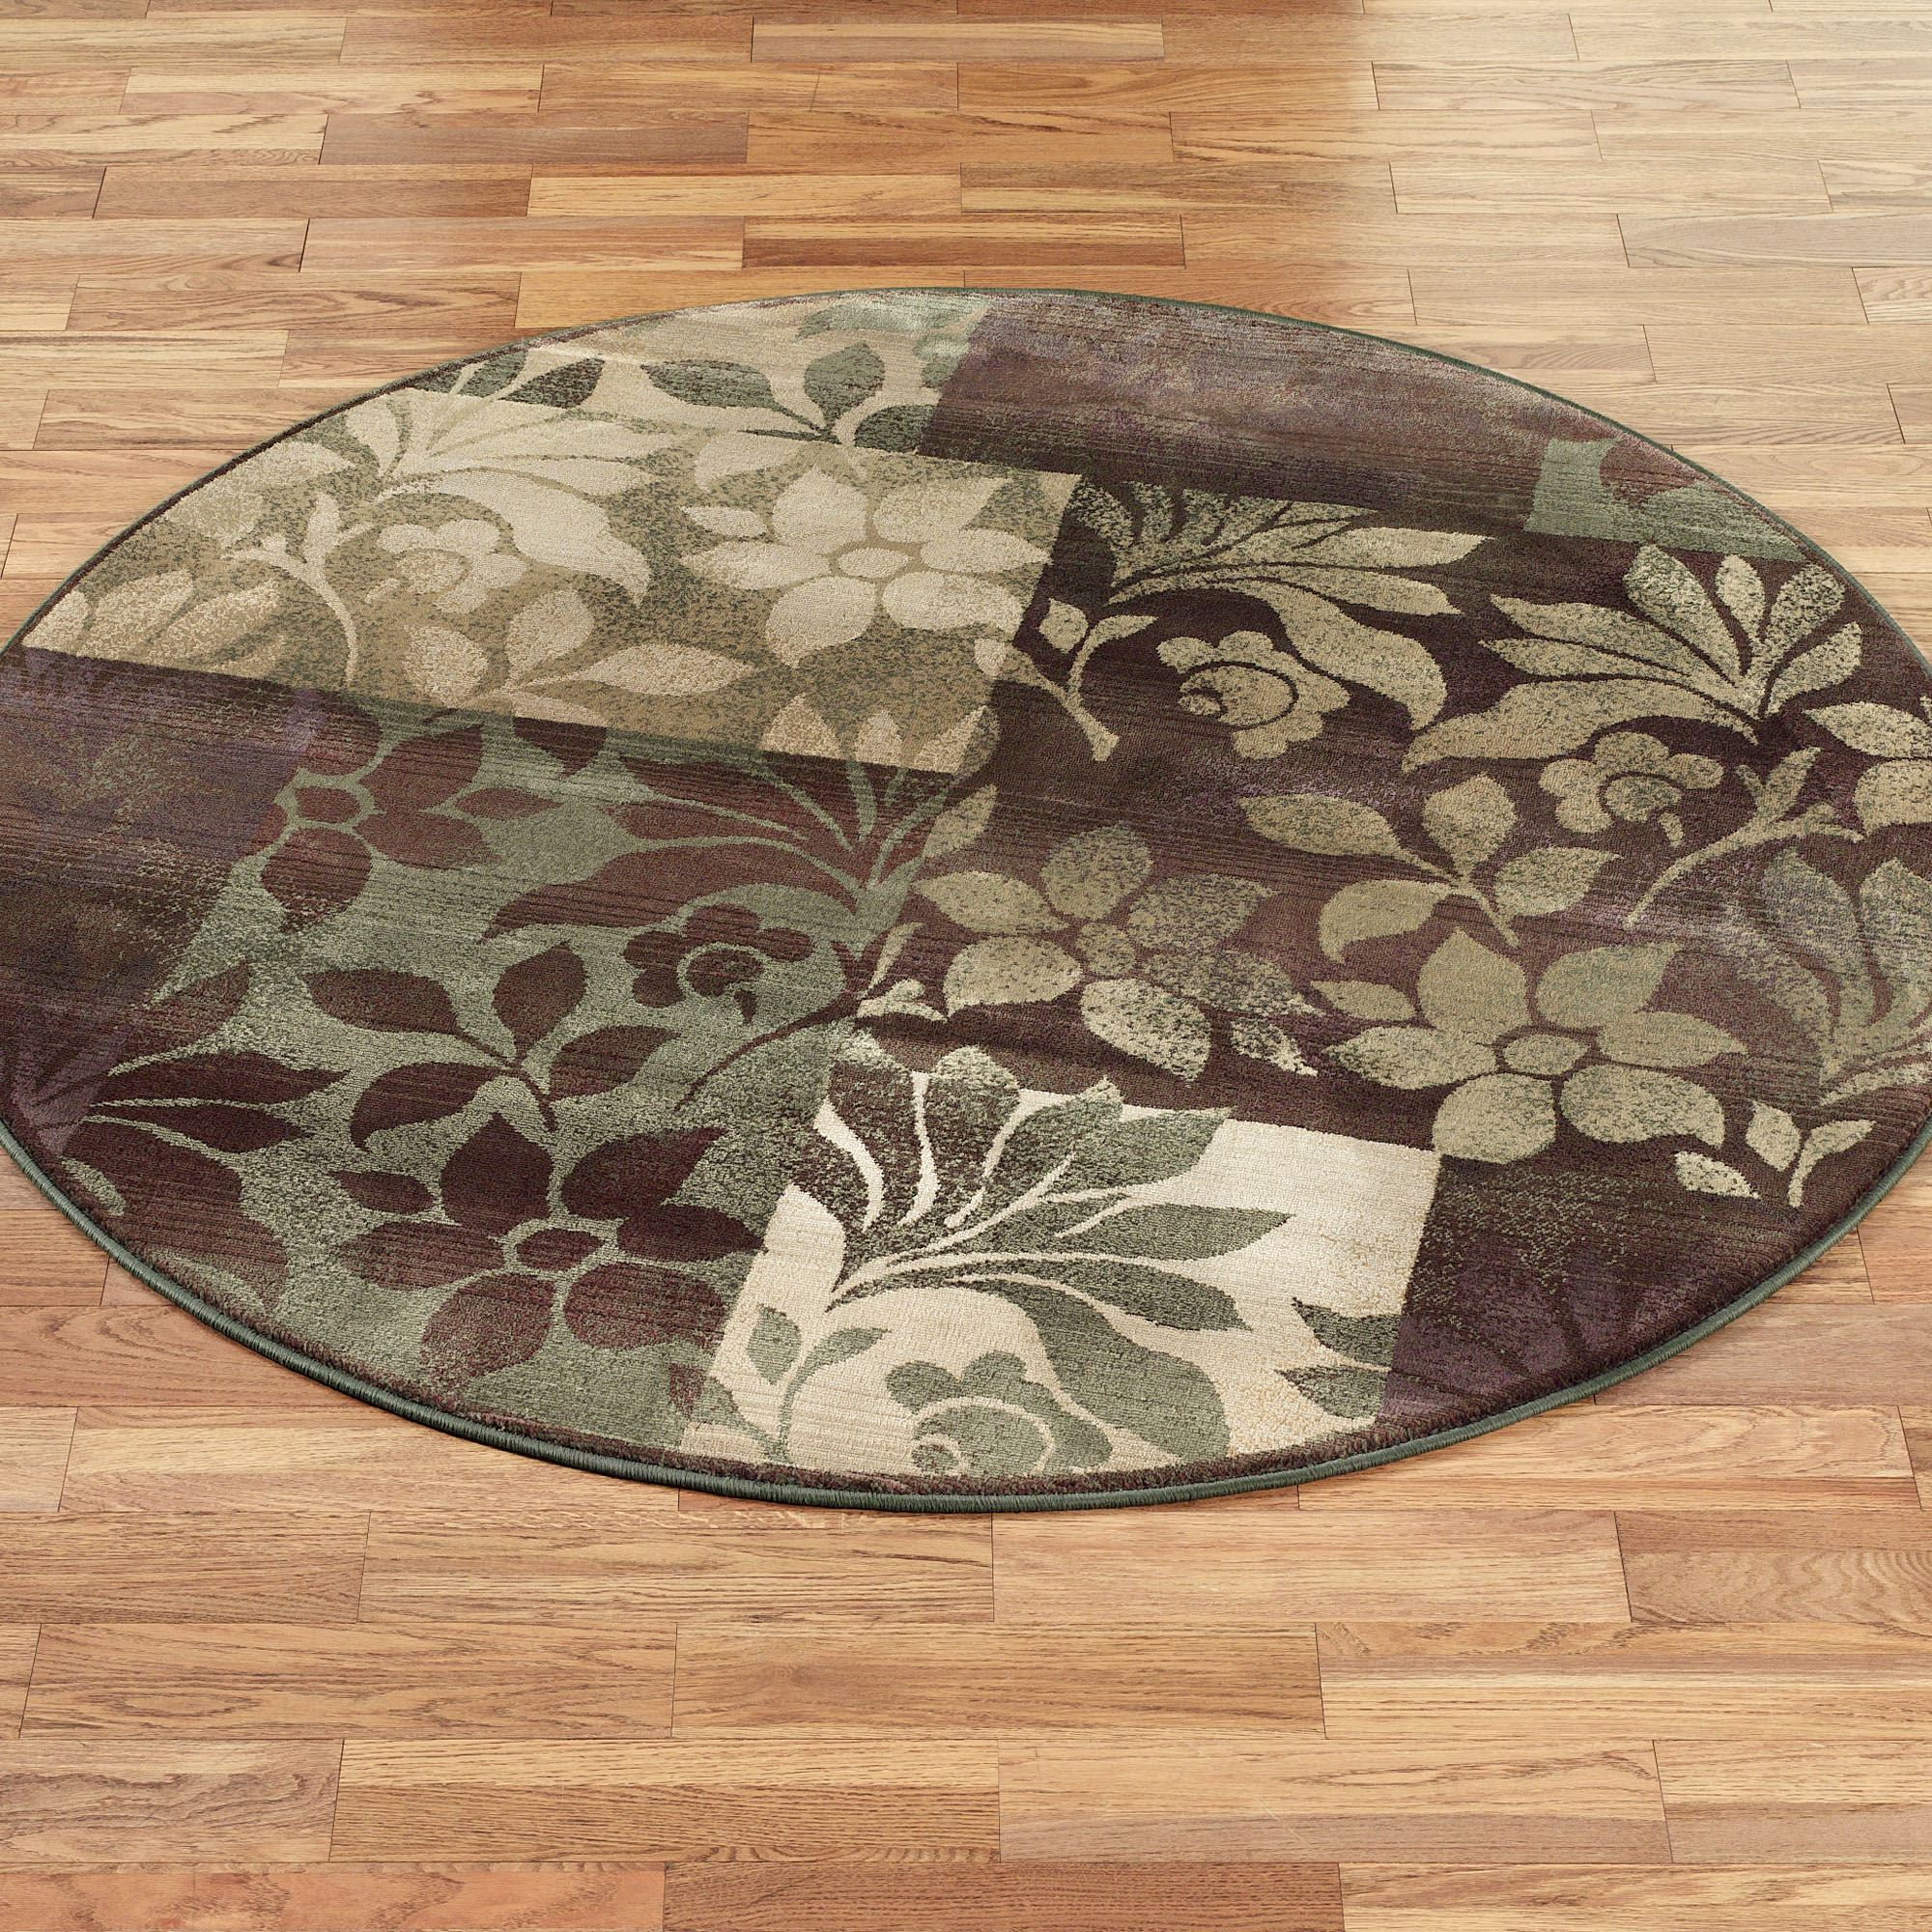 Fantastic Leaf Collage Round Area Rugs NZ12